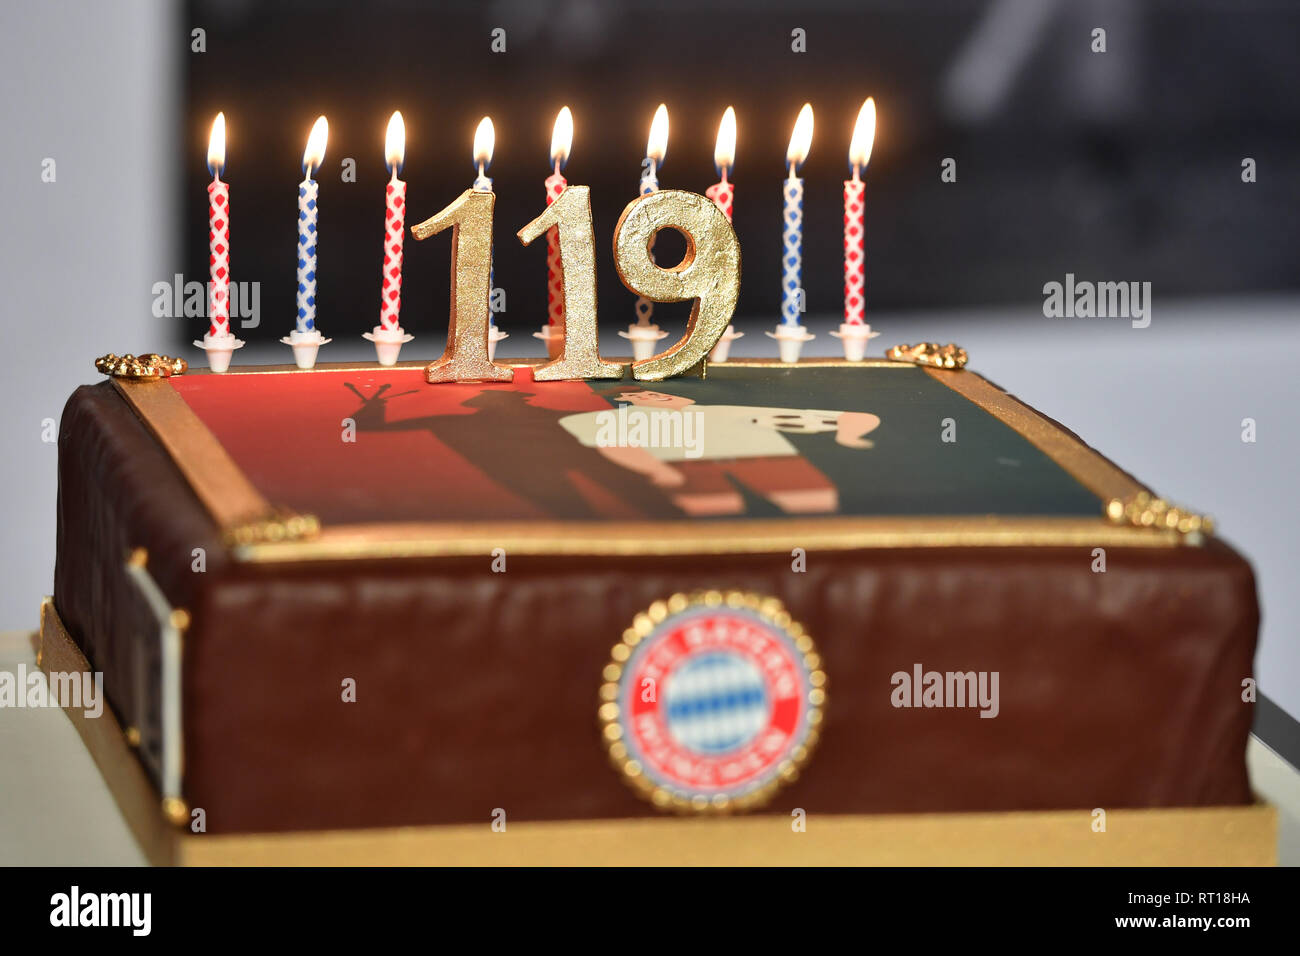 Candles Burn On A Birthday Cake Happy FC Bayern The 27th Of February 119 Years Ago German Record Champion Was Founded